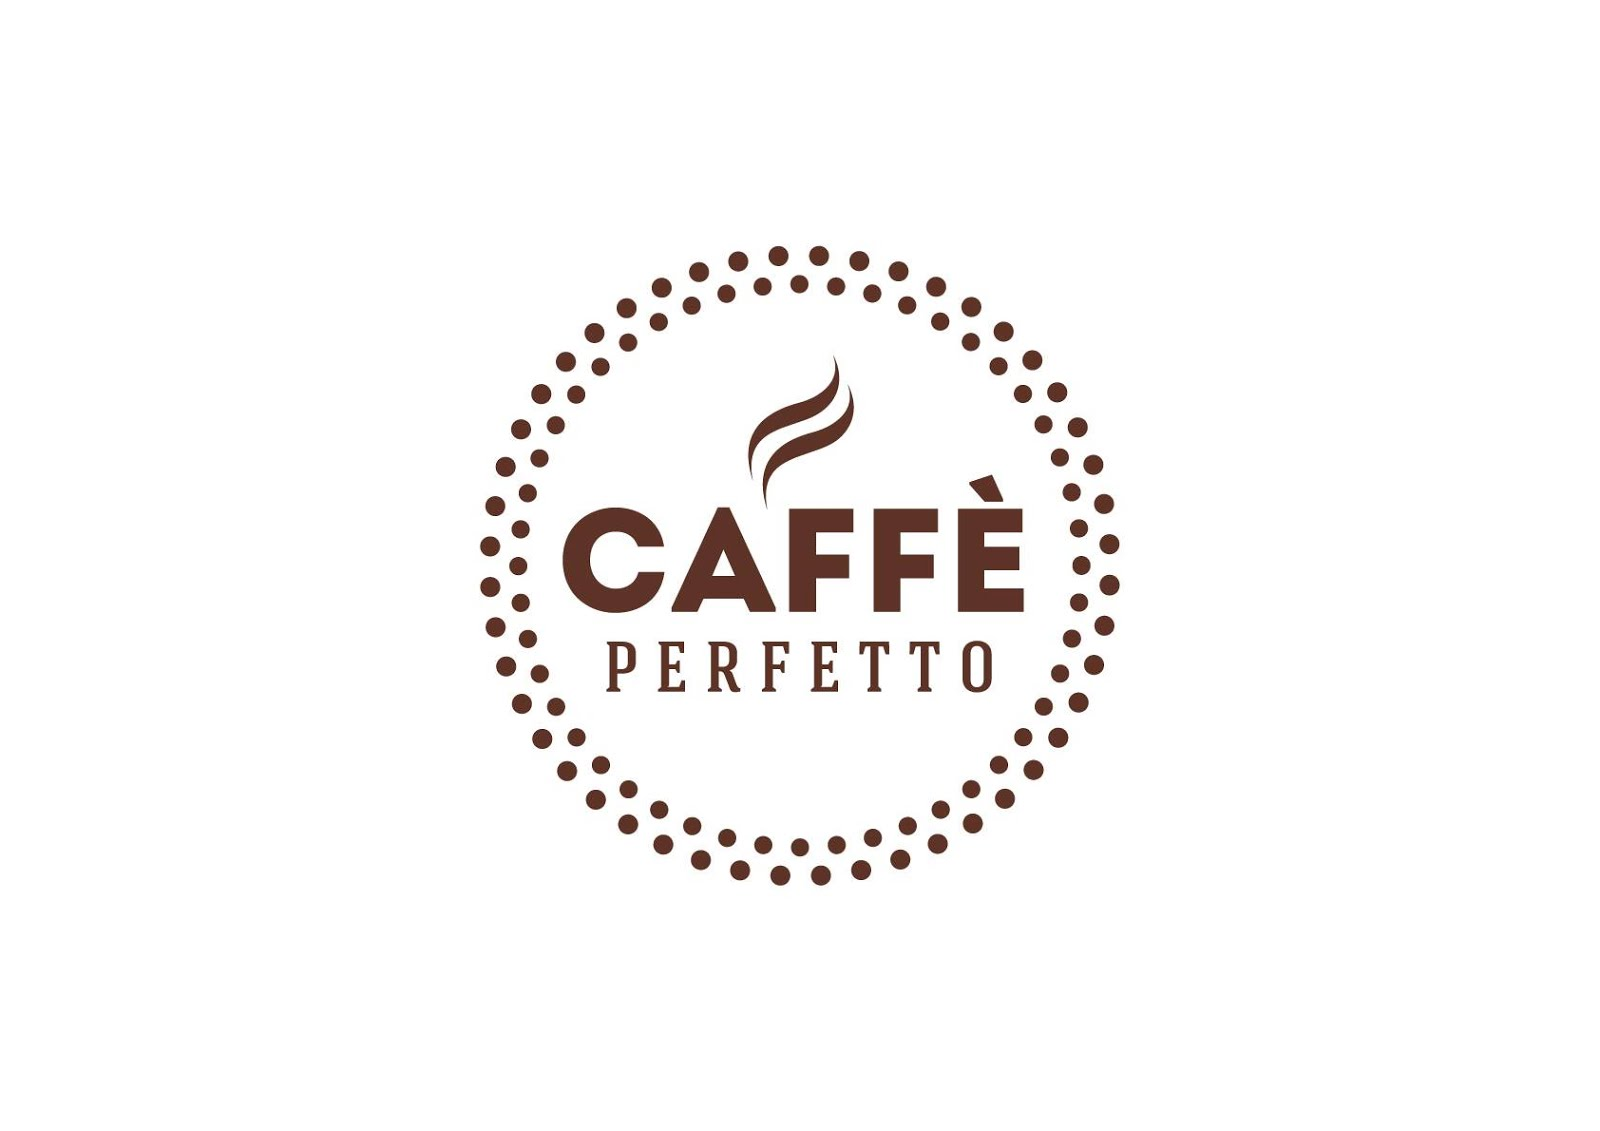 współpracuję z firmą Caffe Perfetto od grudzień 2020r